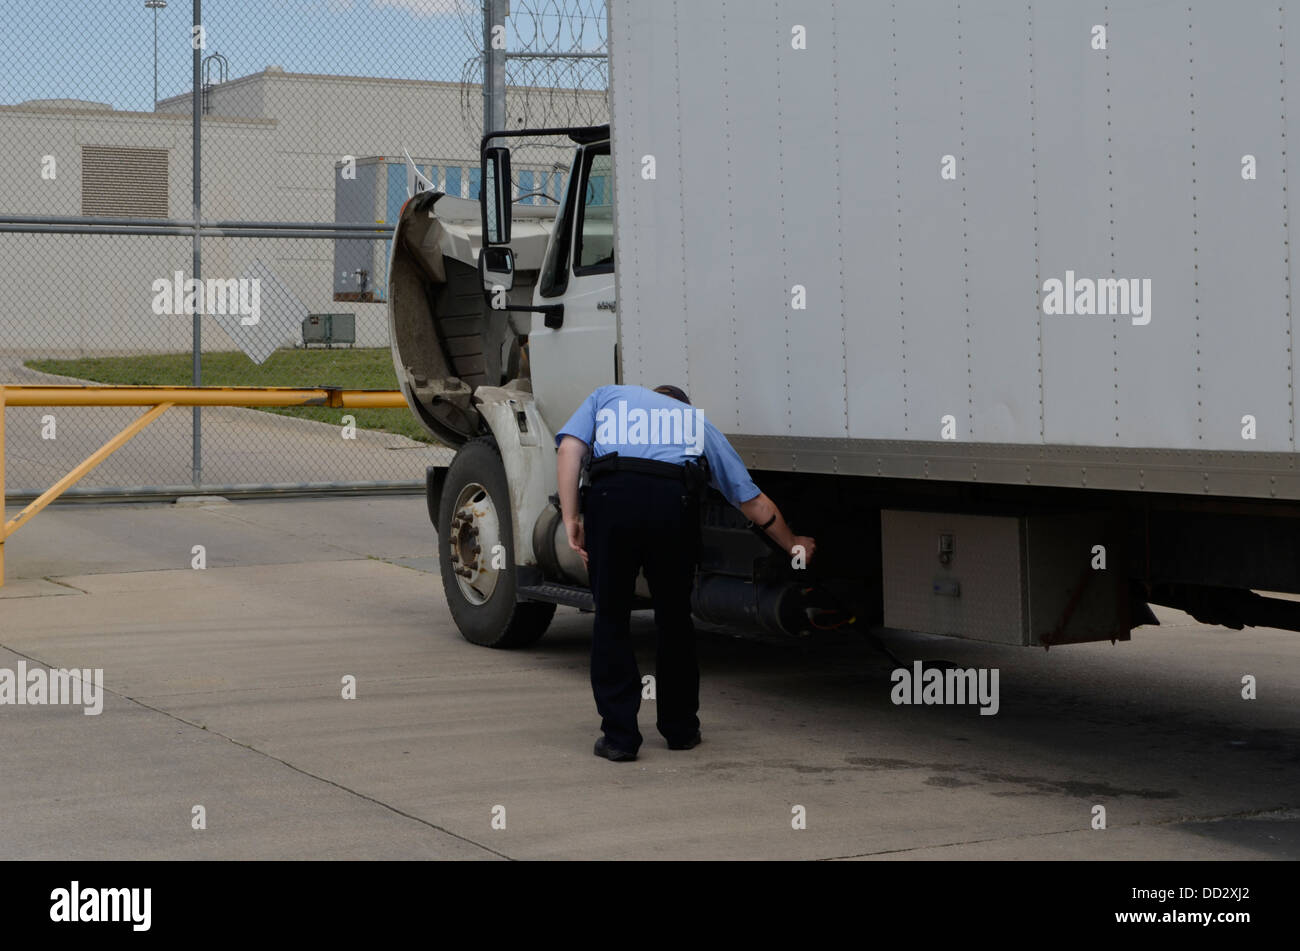 Officer searching vehicle about to enter an American maximum security prison for juvenile offenders. - Stock Image